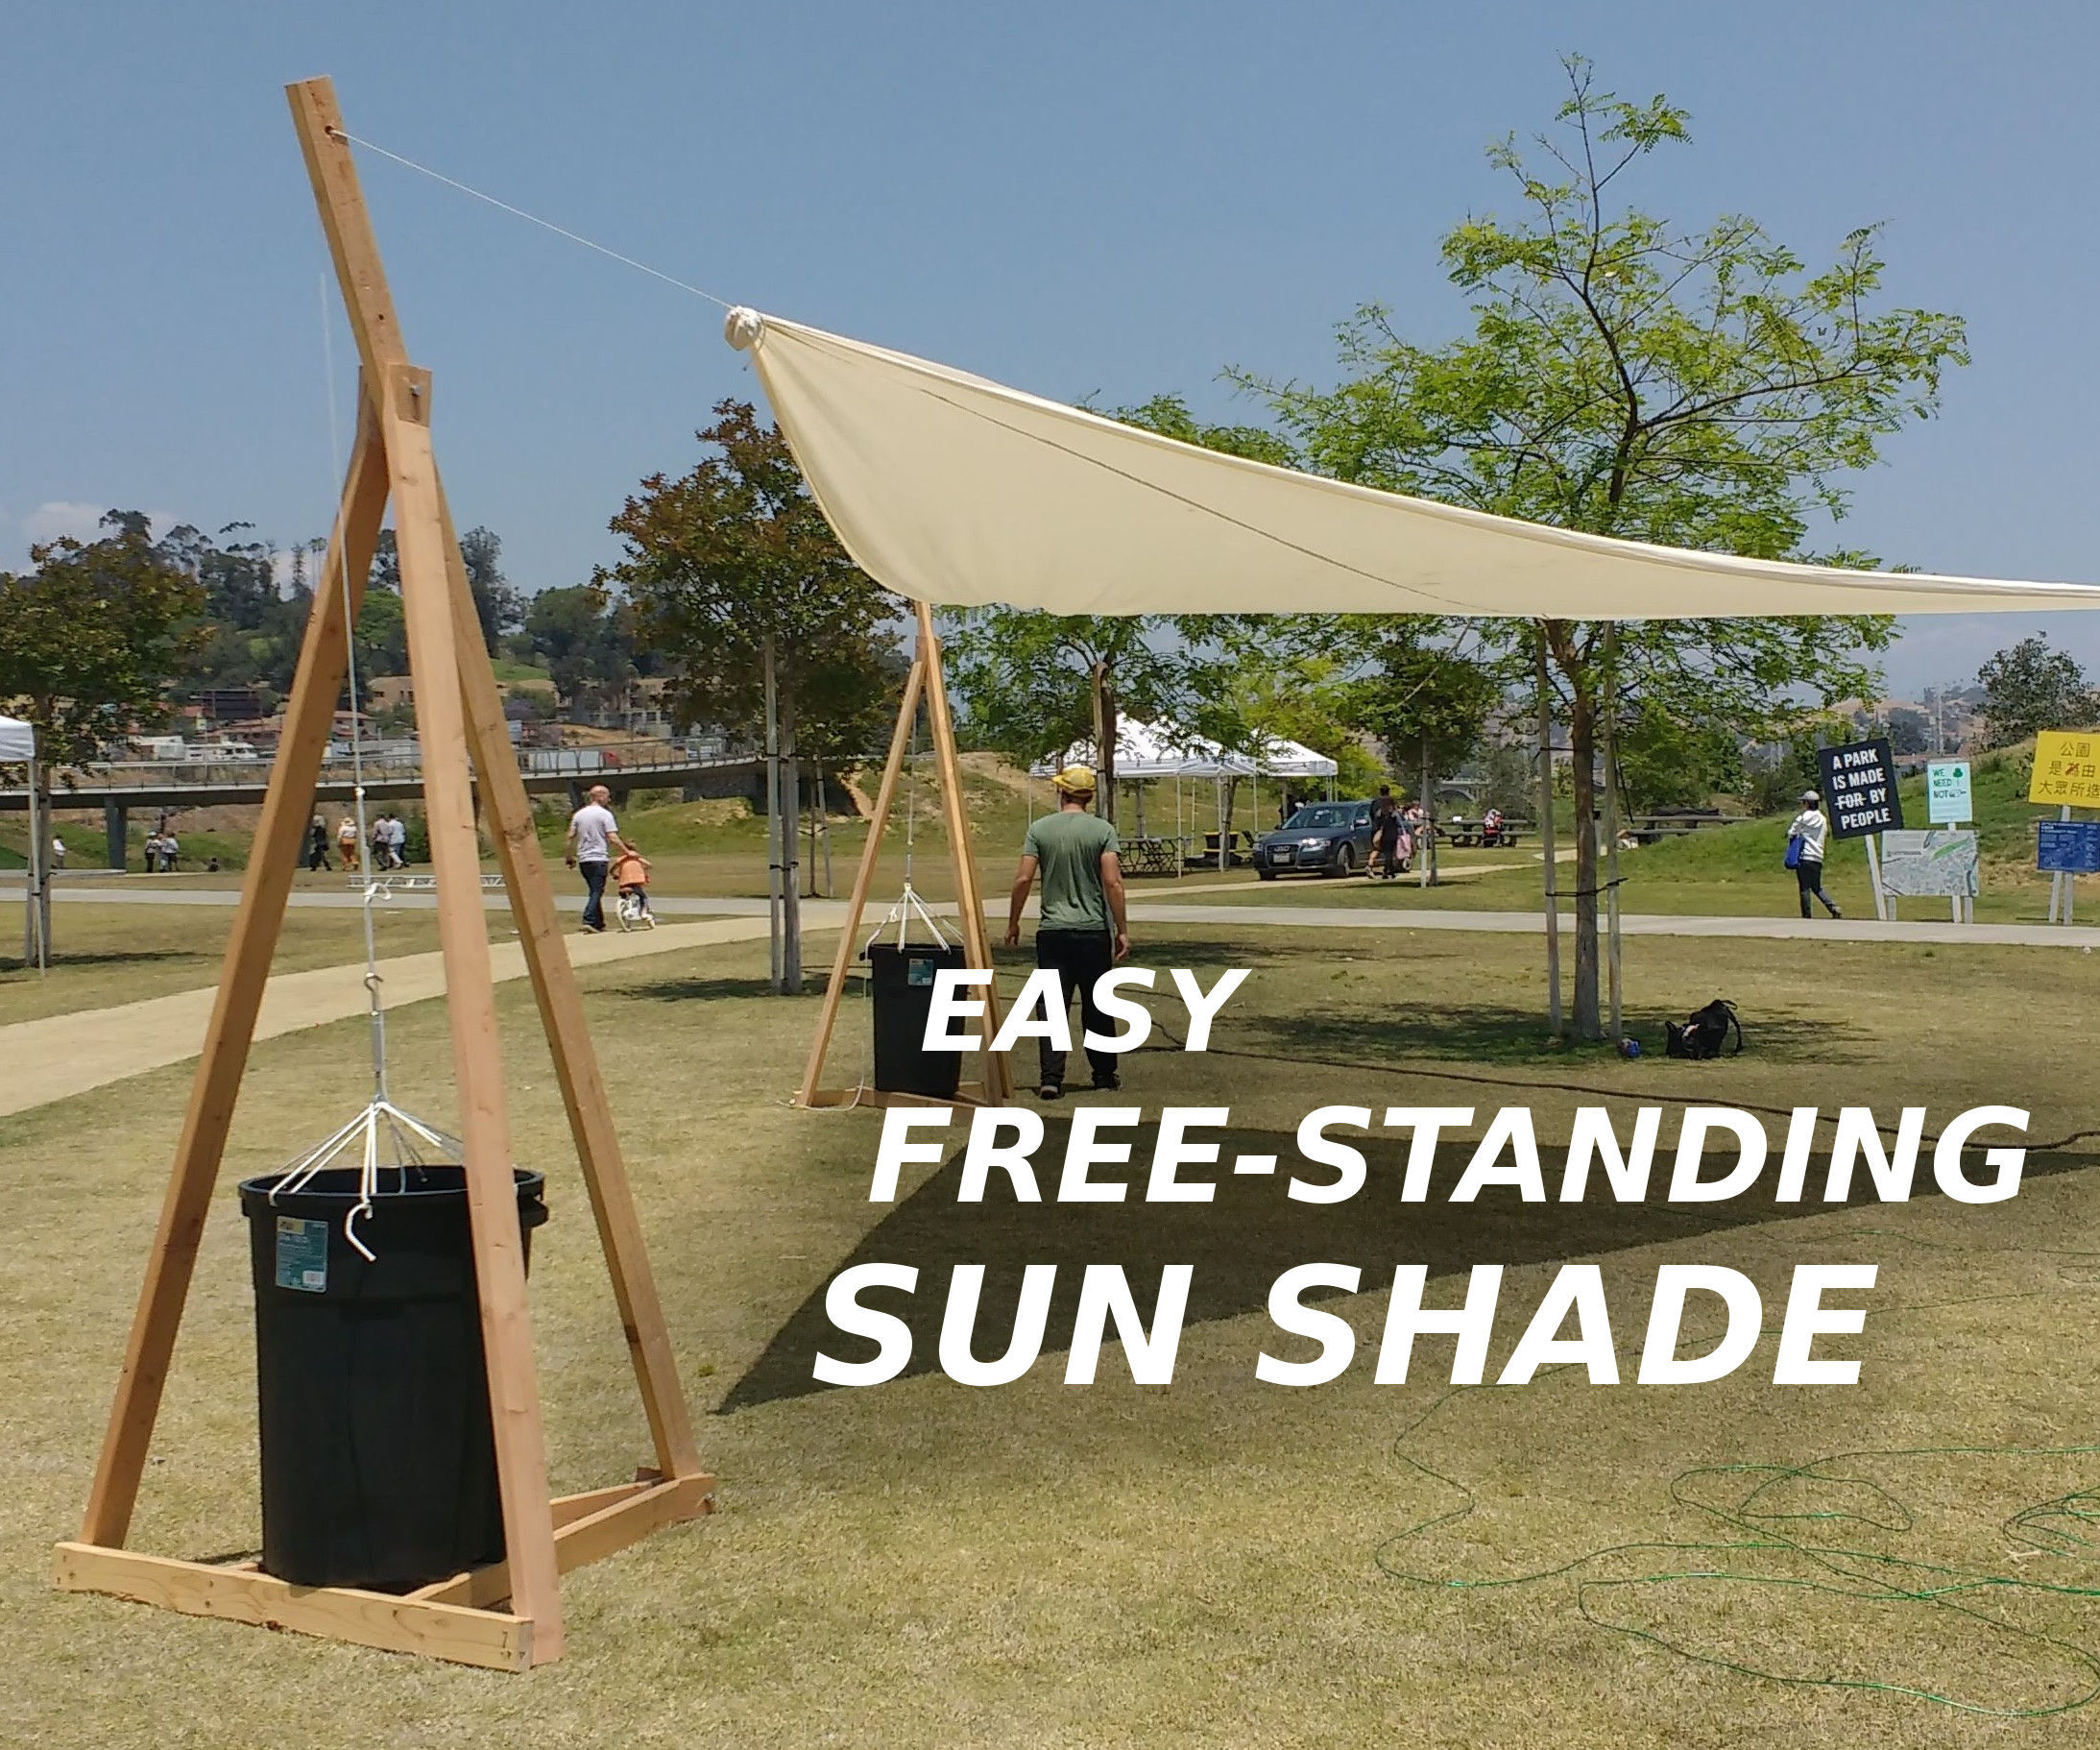 Easy Free-Standing Sun Shade